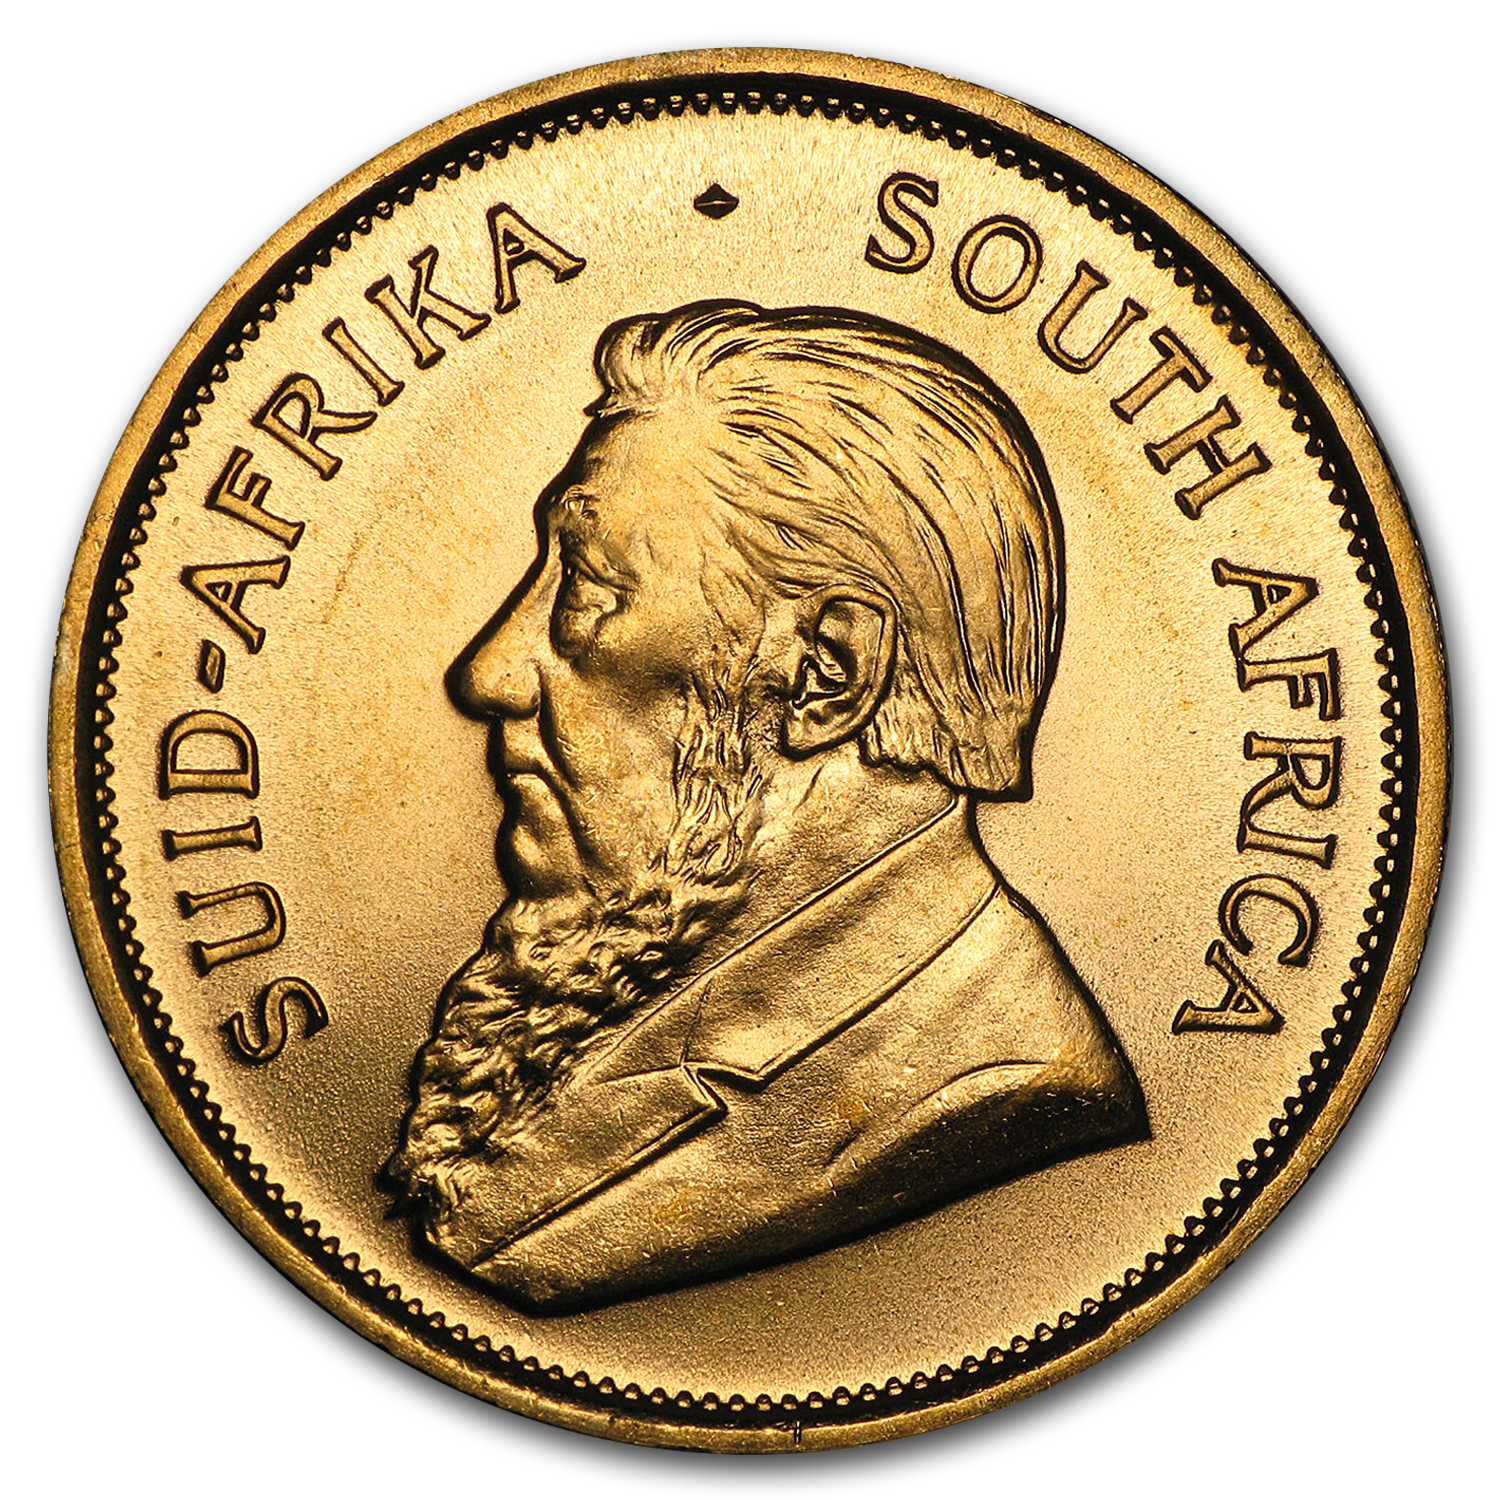 1993 South Africa 1 oz Gold Krugerrand